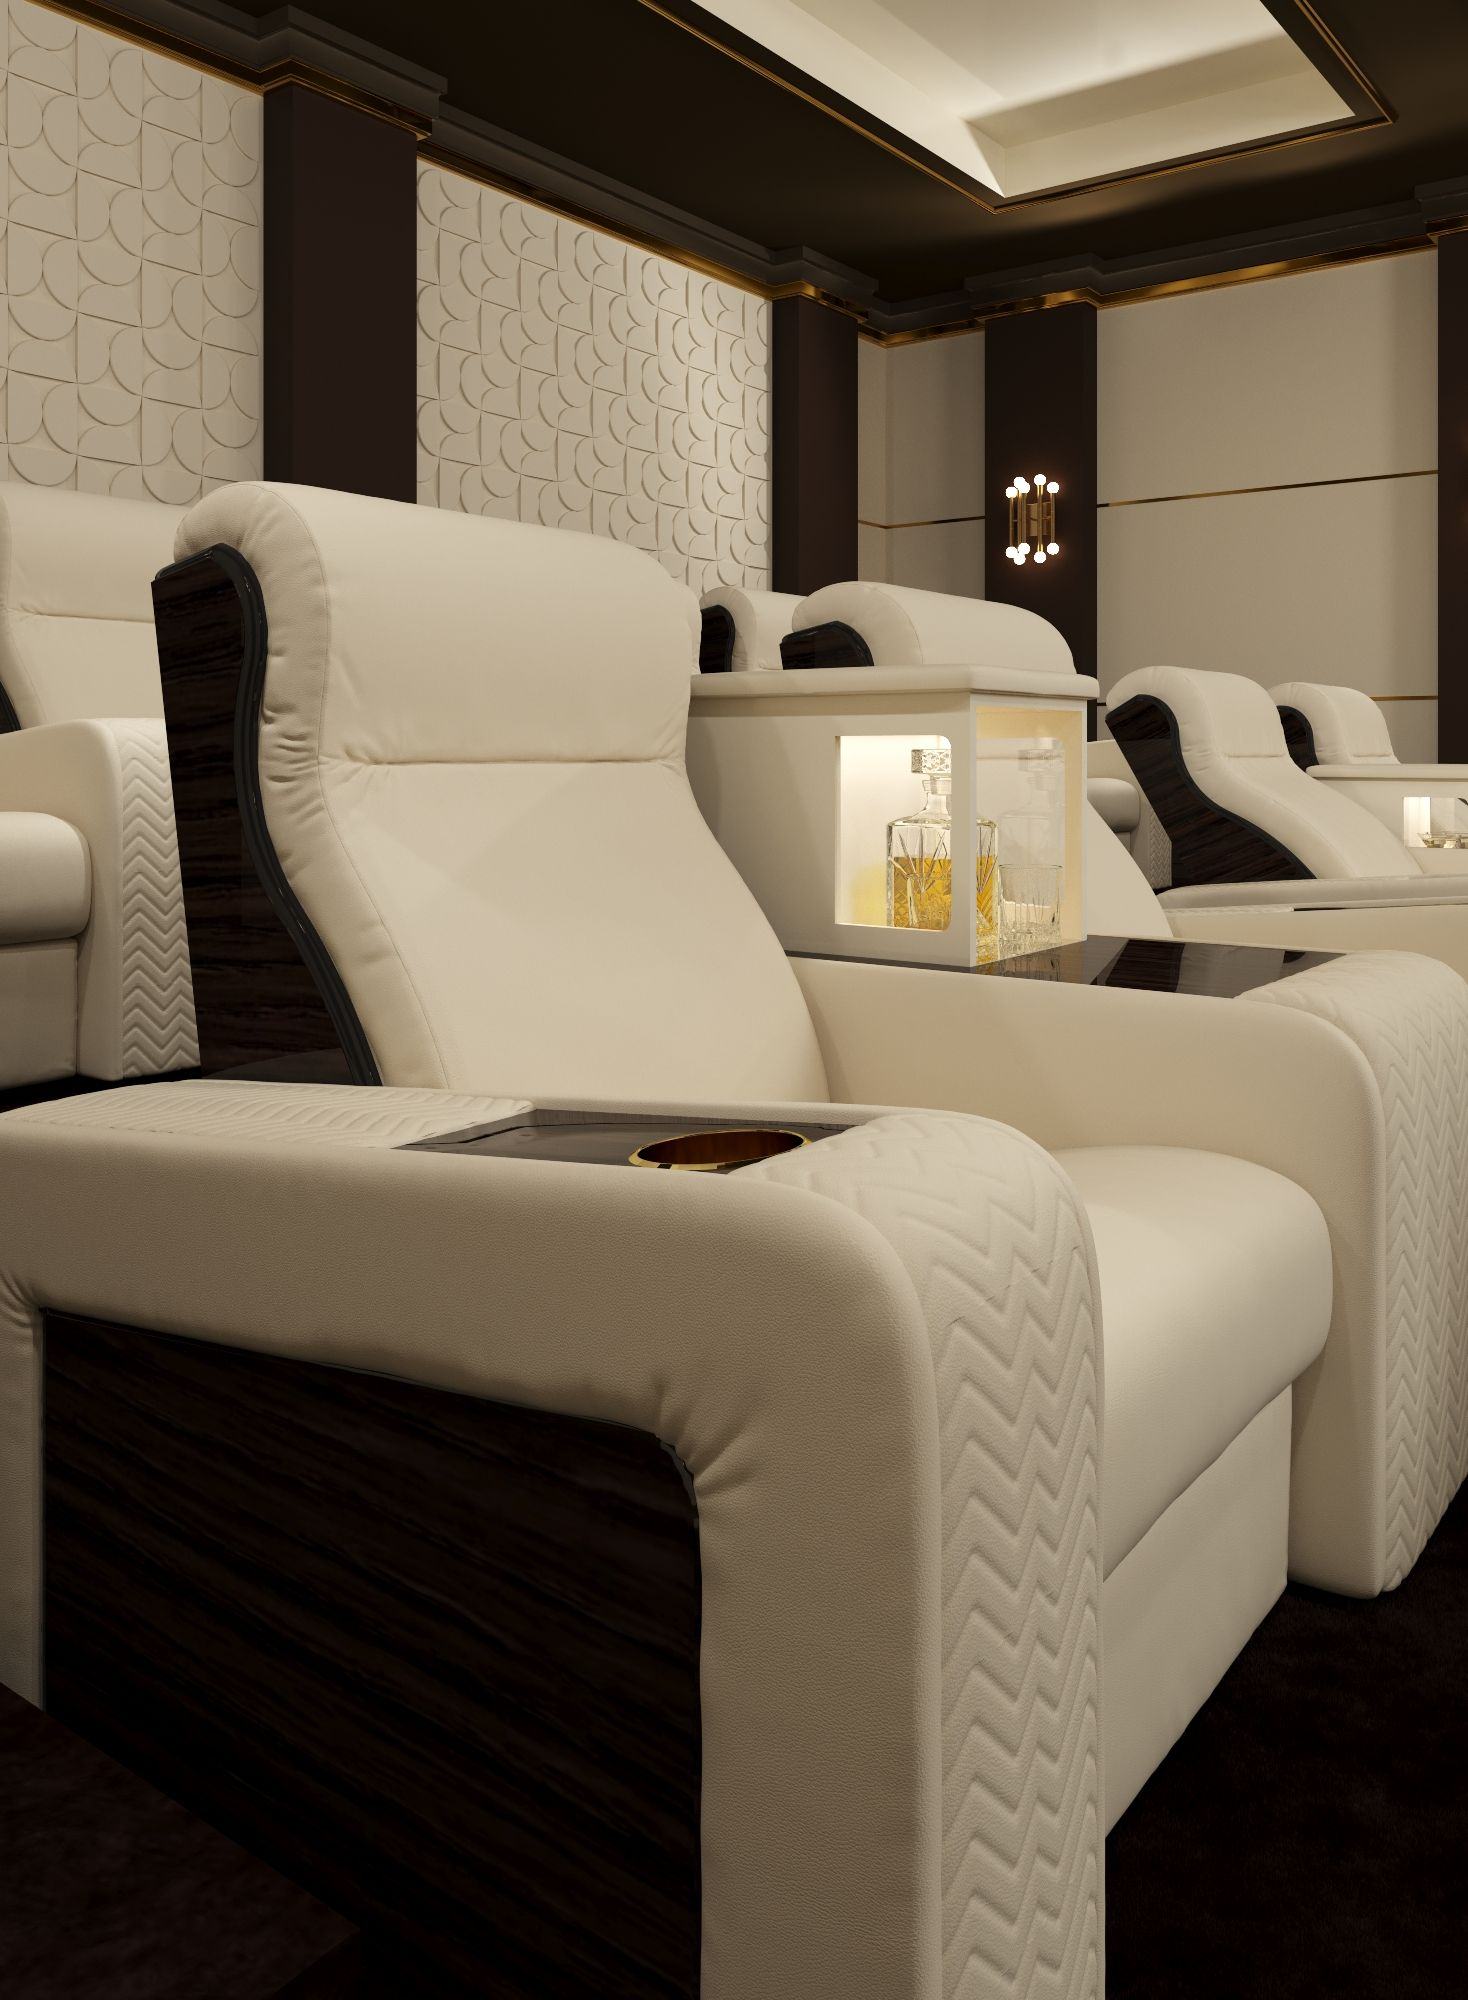 Cinema Seating Onassis Home Cinema Room Home Theater Seating Home Theater Design